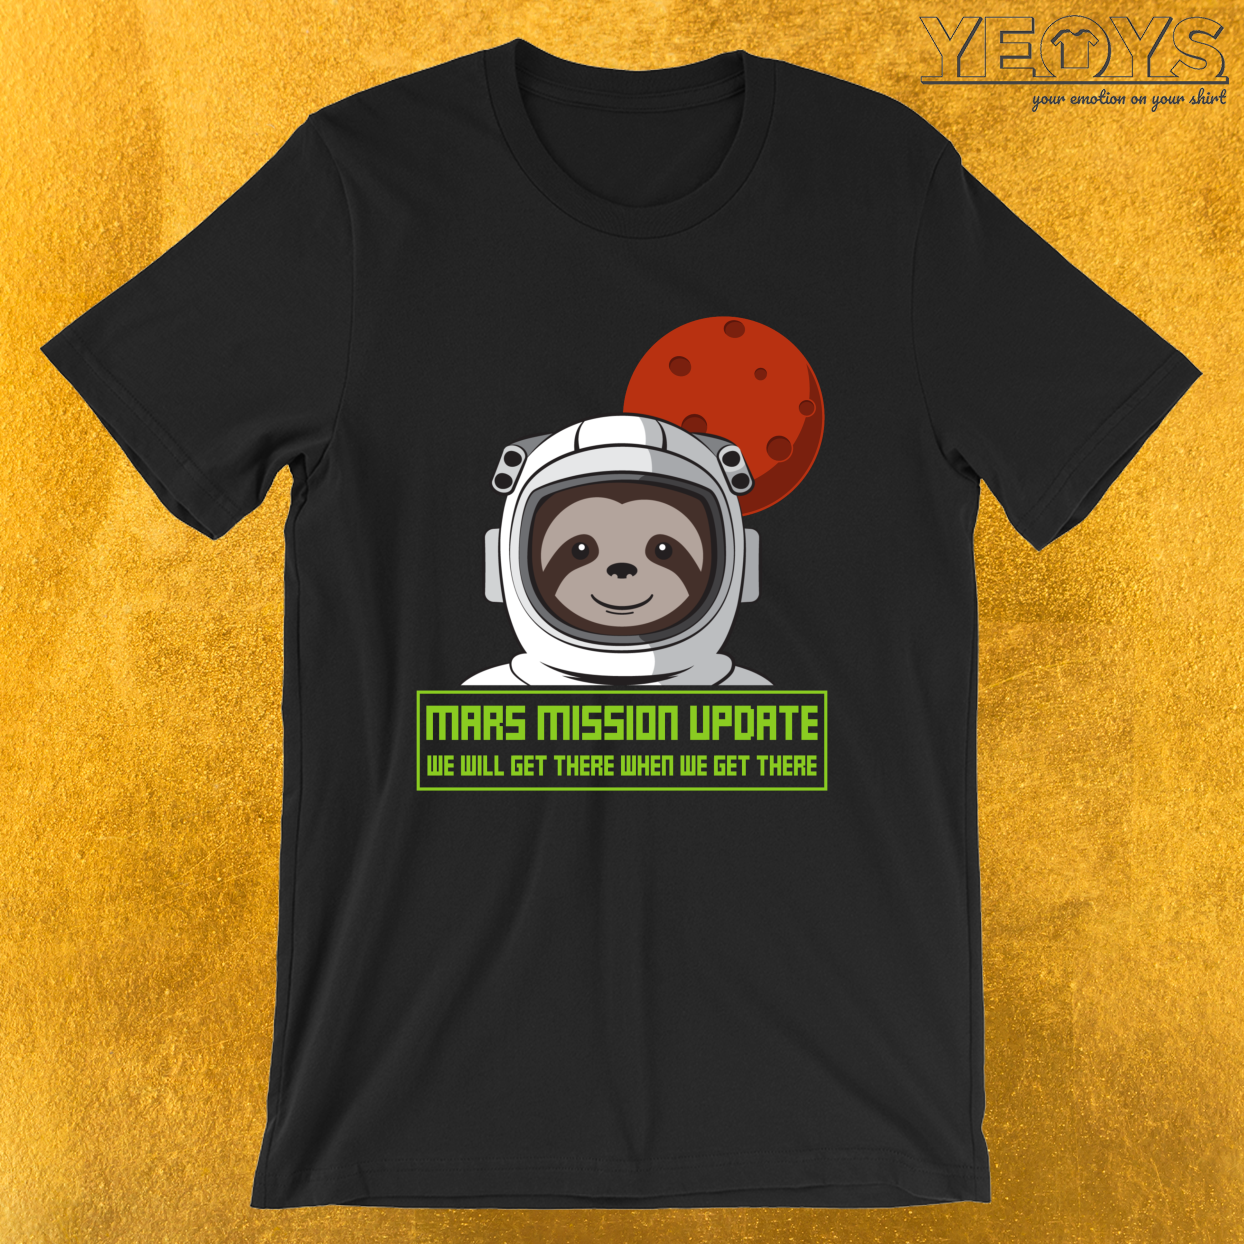 We Will Get There When We Get There – Mars Mission Tee